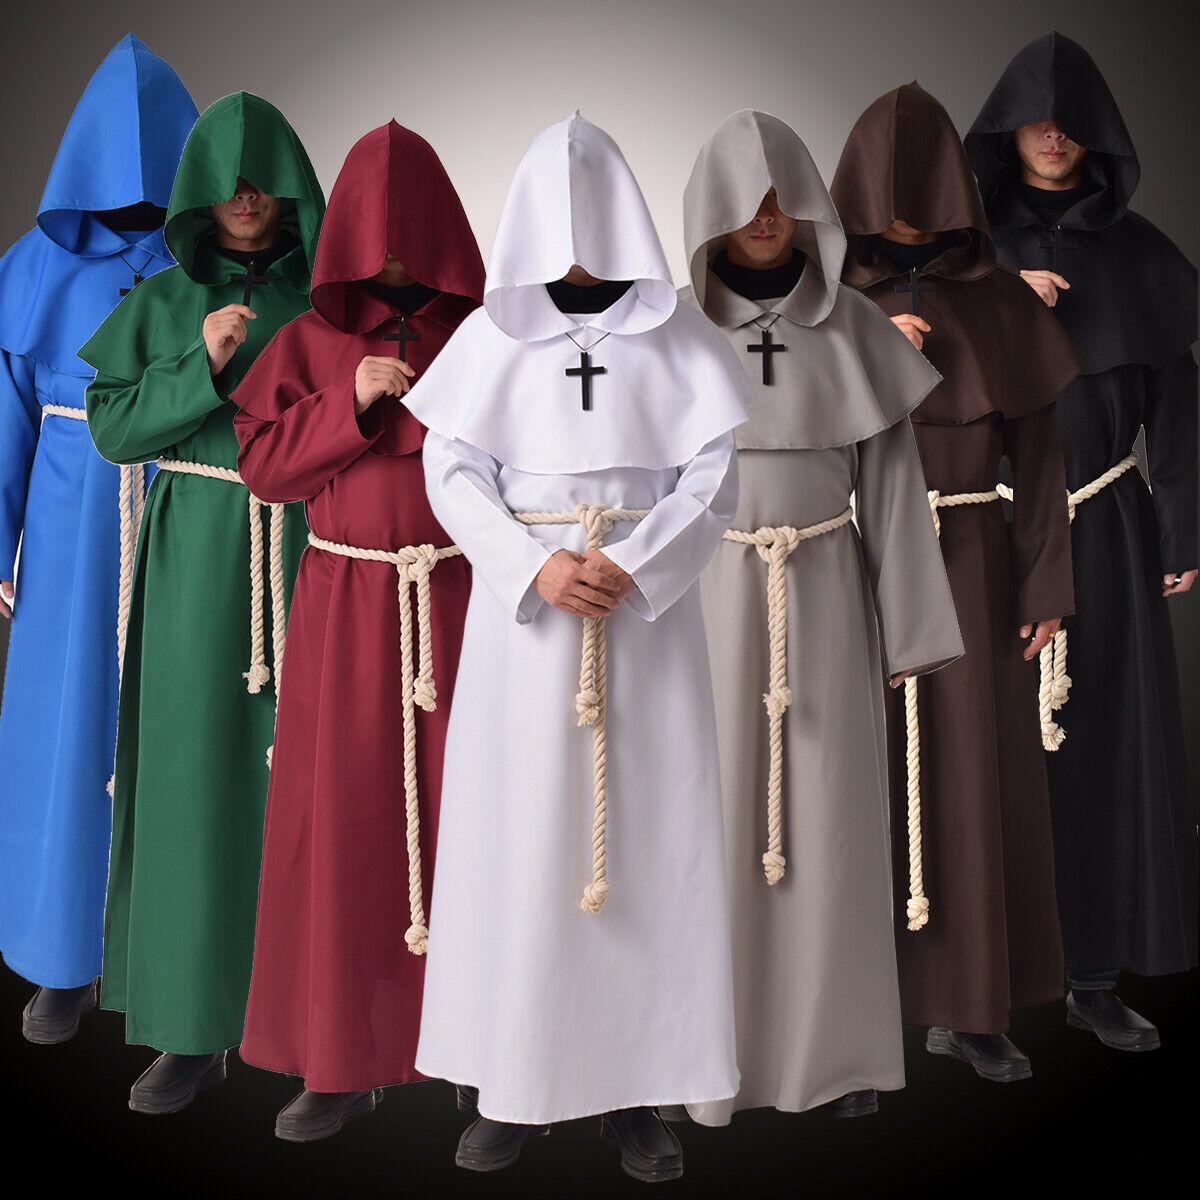 Friar Medieval Hooded Monk Renaissance Priest Robe Costume Cosplay